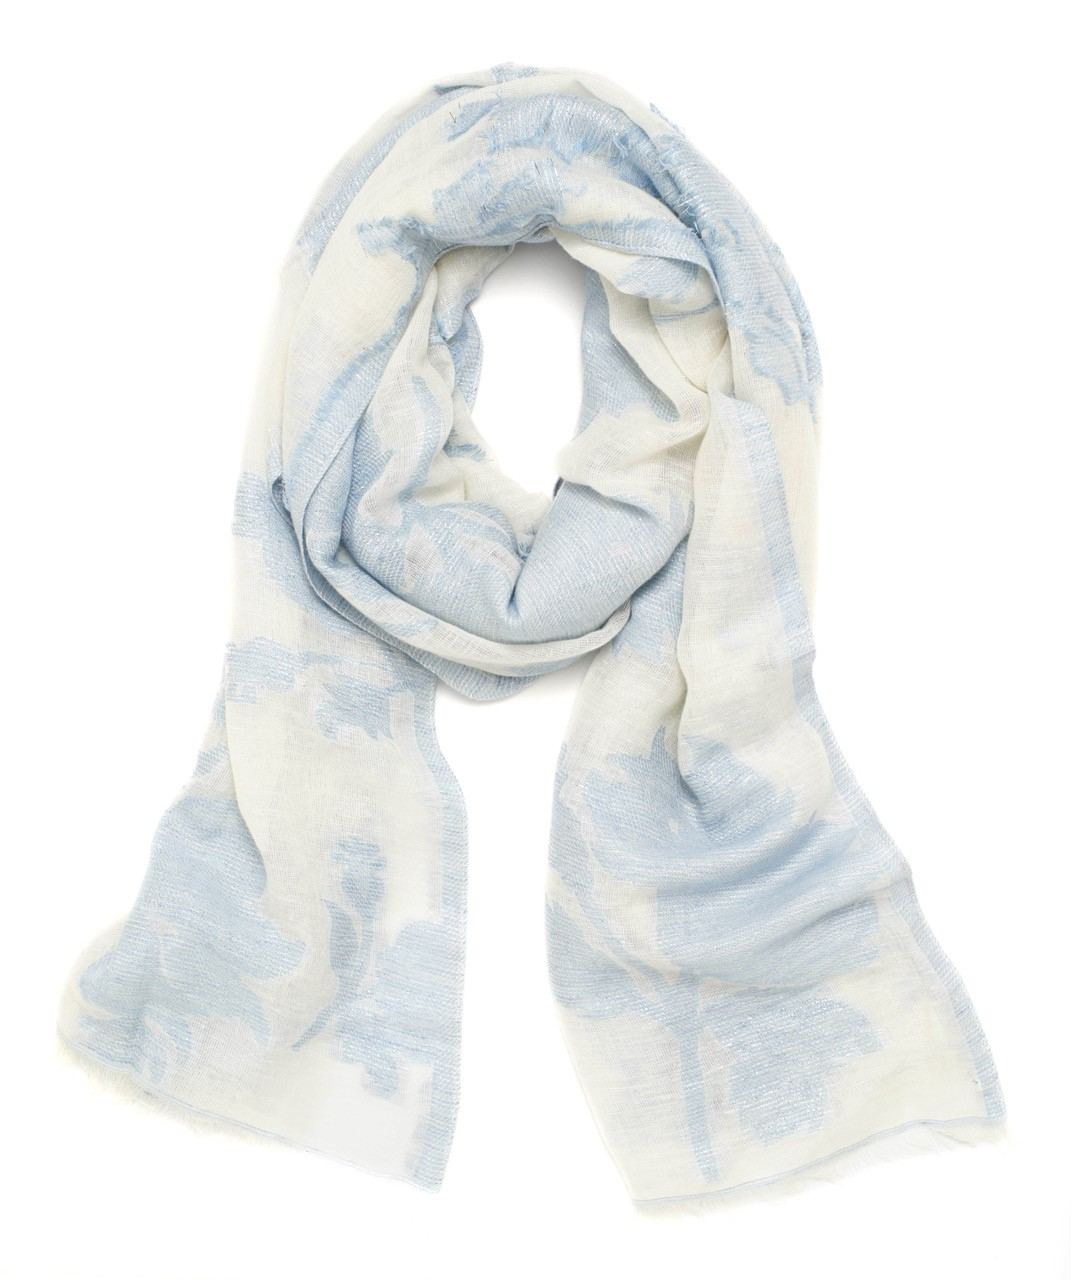 LOFT Shimmer Floral Scarf // Price: $39.50 // Purchase at LOFT stores // (Photo: LOFT)